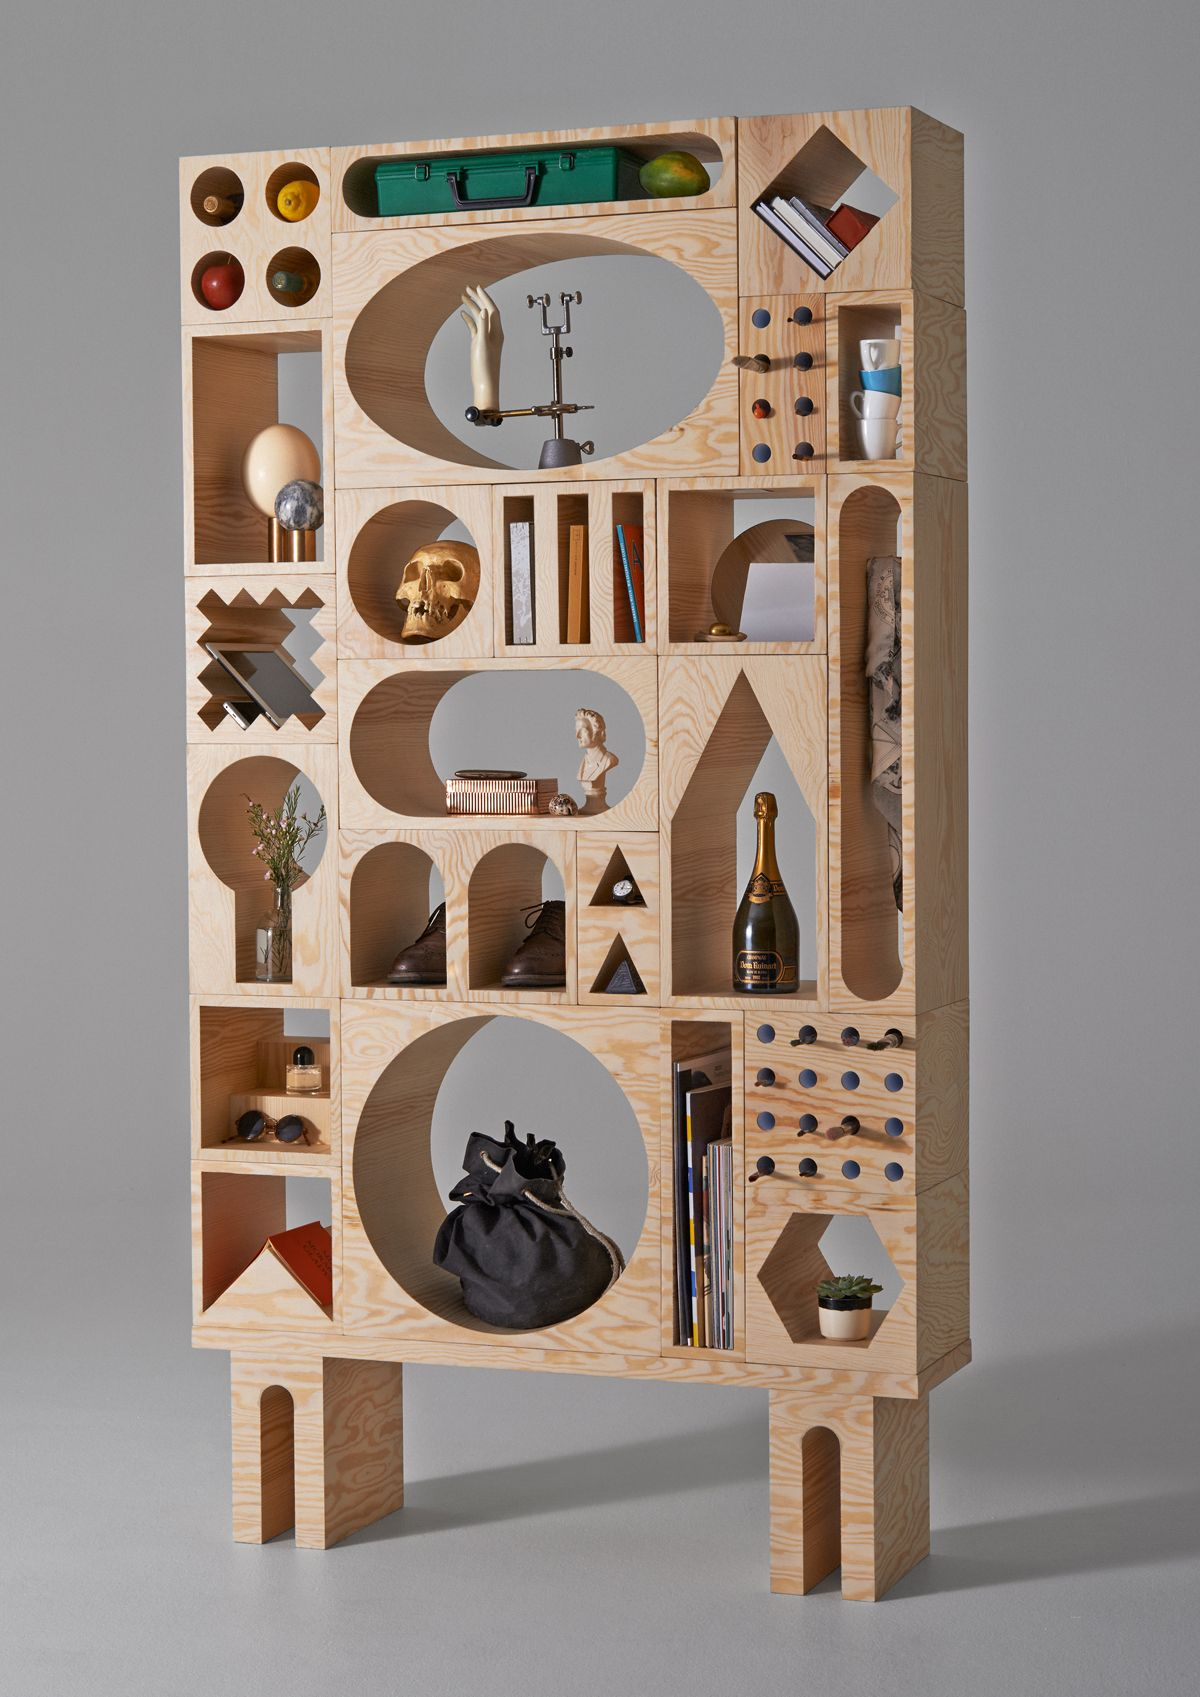 Playful furniture to have in your home Playful Furniture Inviting You to Fill in the Voids: ROOM Collection